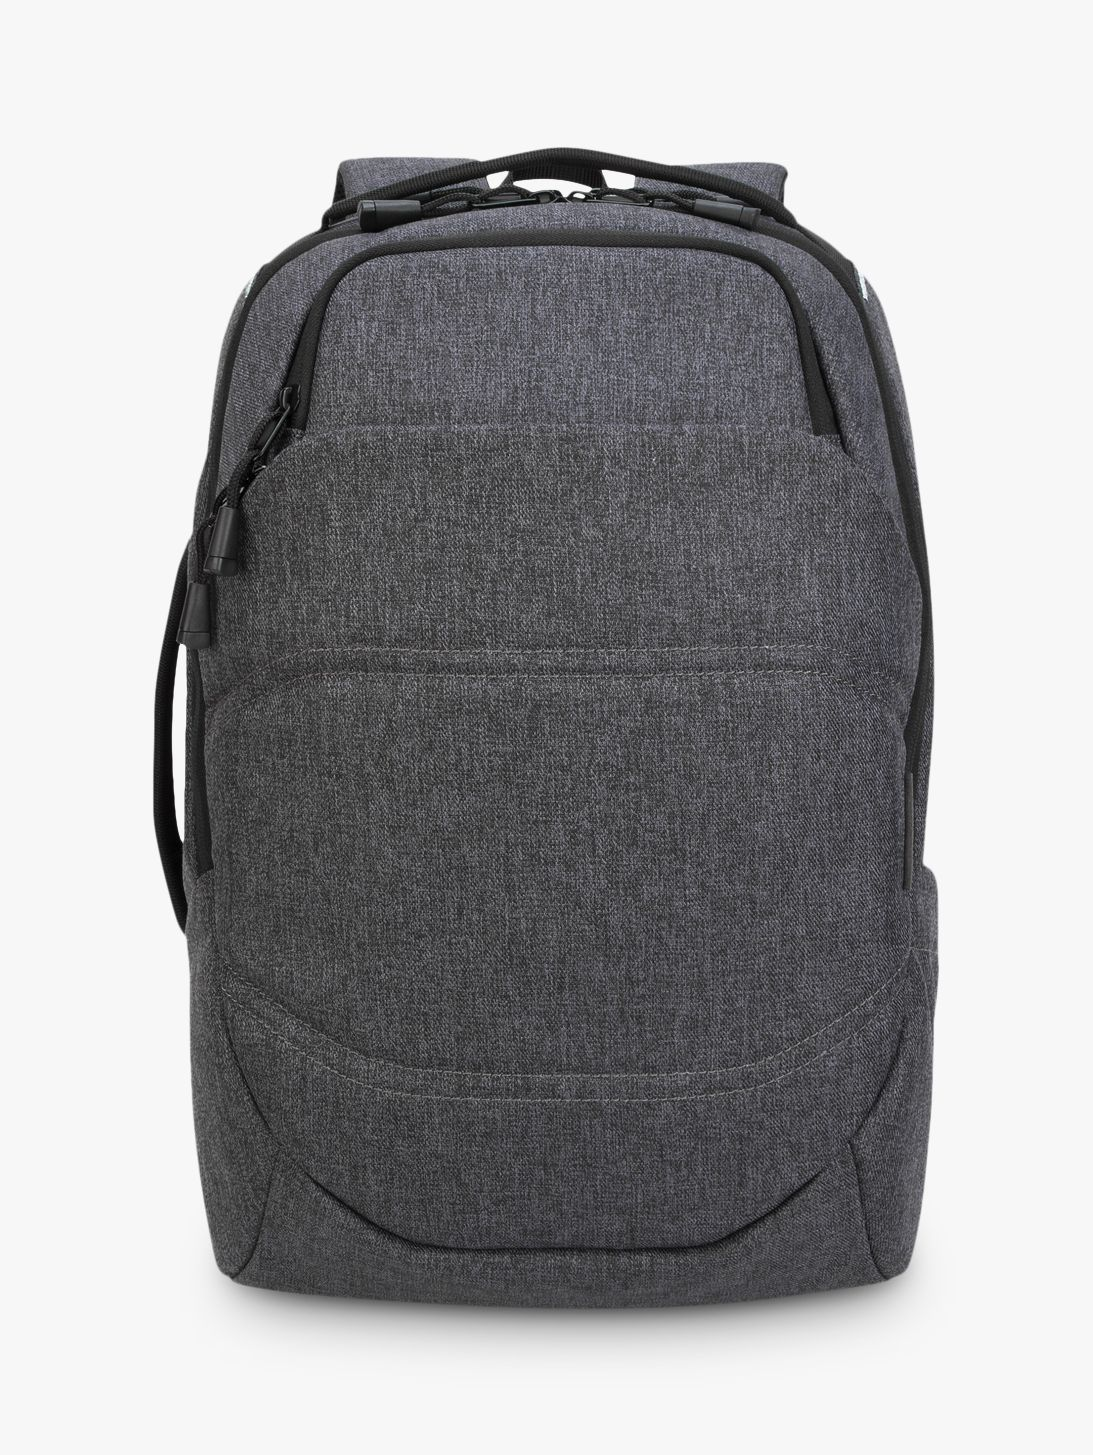 Targus Targus Groove X2 Max Backpack for MacBook 15 and Laptop up to 15